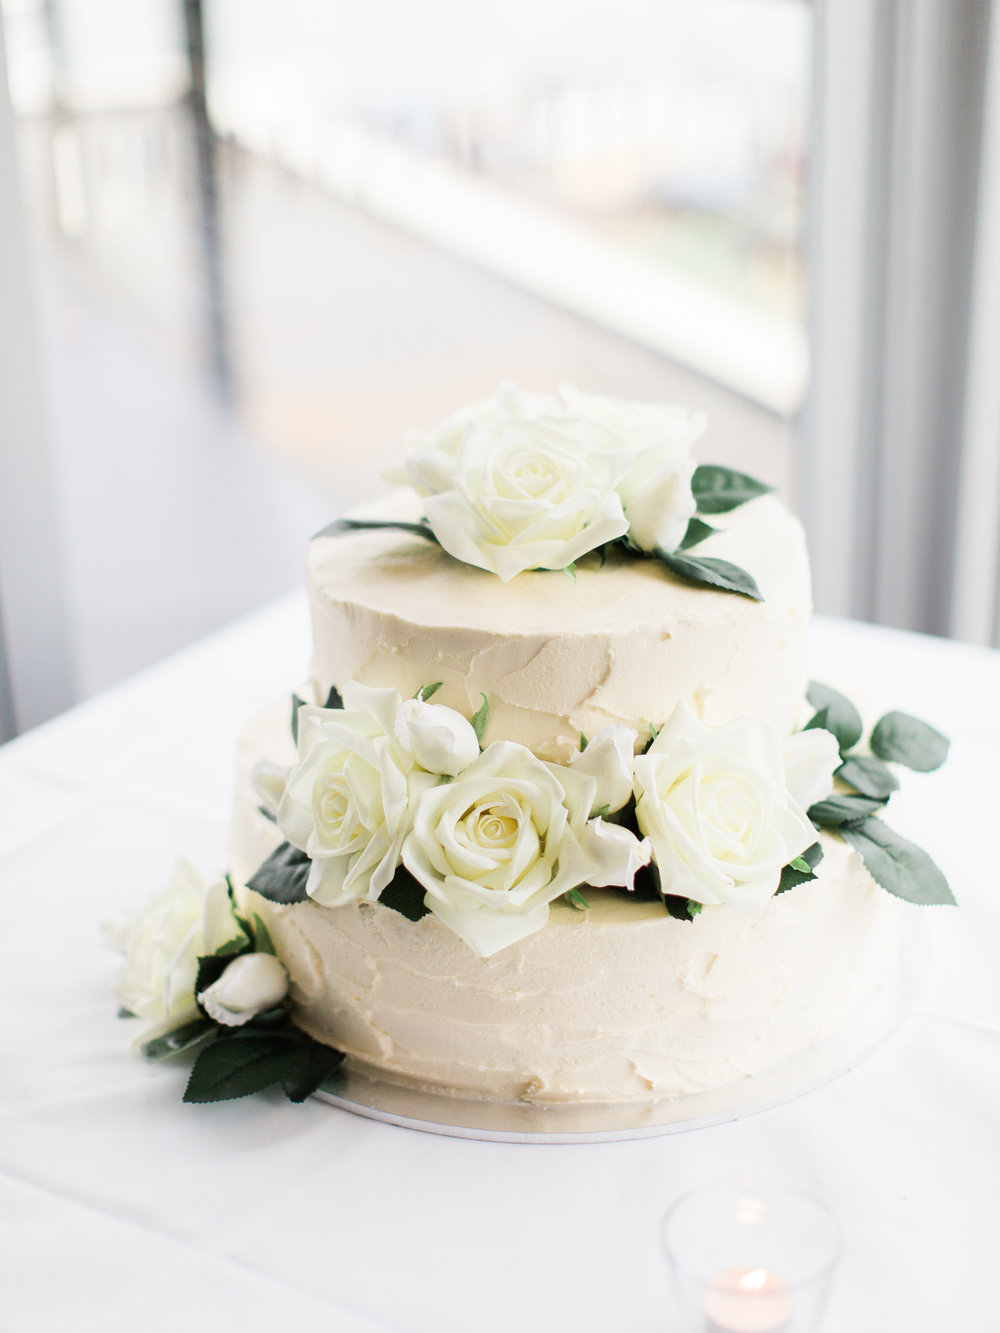 Salted caramel mud cake w/ vanilla bean 'rustic' buttercream frosting Photo Credit: We Are Origami Photography